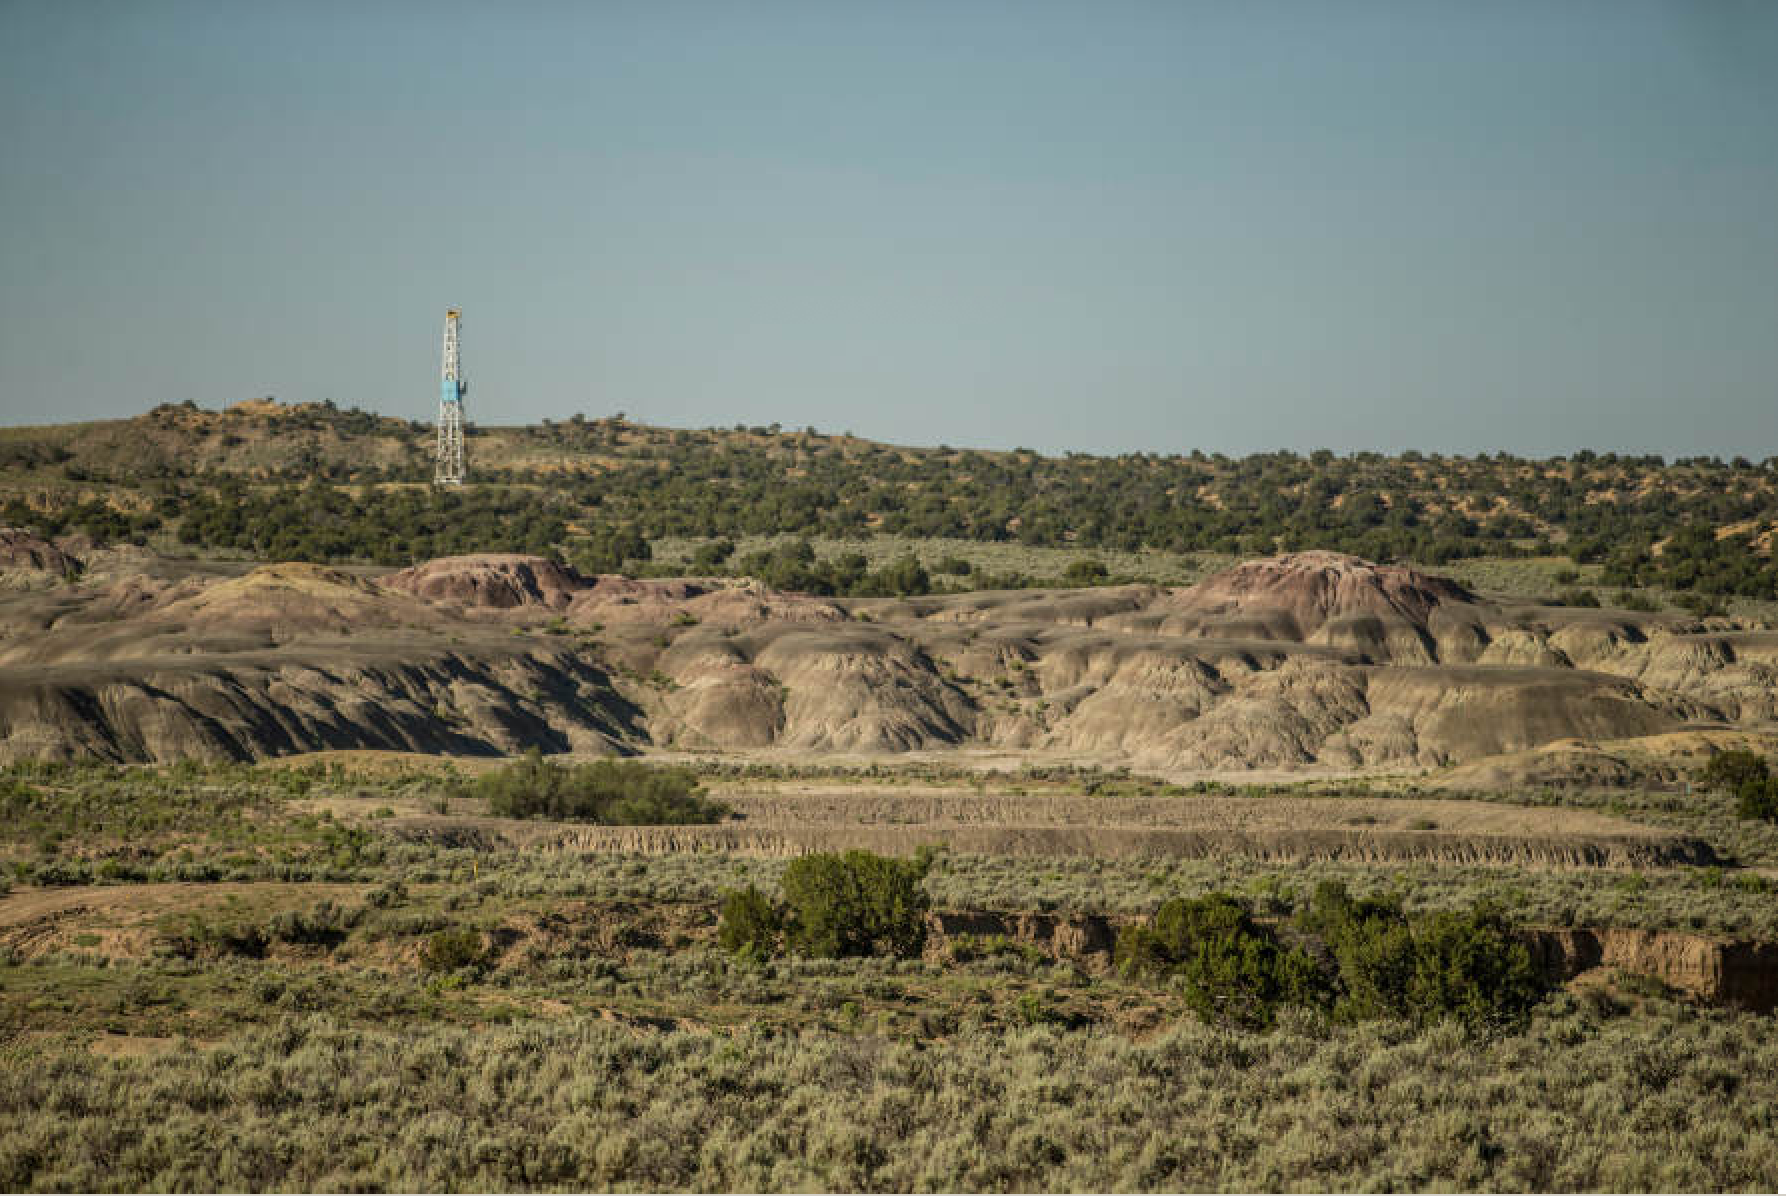 WPX produces oil in the southern end of the San Juan Basin from the Gallup Sandstone and has a legacy natural gas position in the northern end of the basin. WPX has one rig deployed in the basin. Photo by Shane Bevel/courtesy WPX